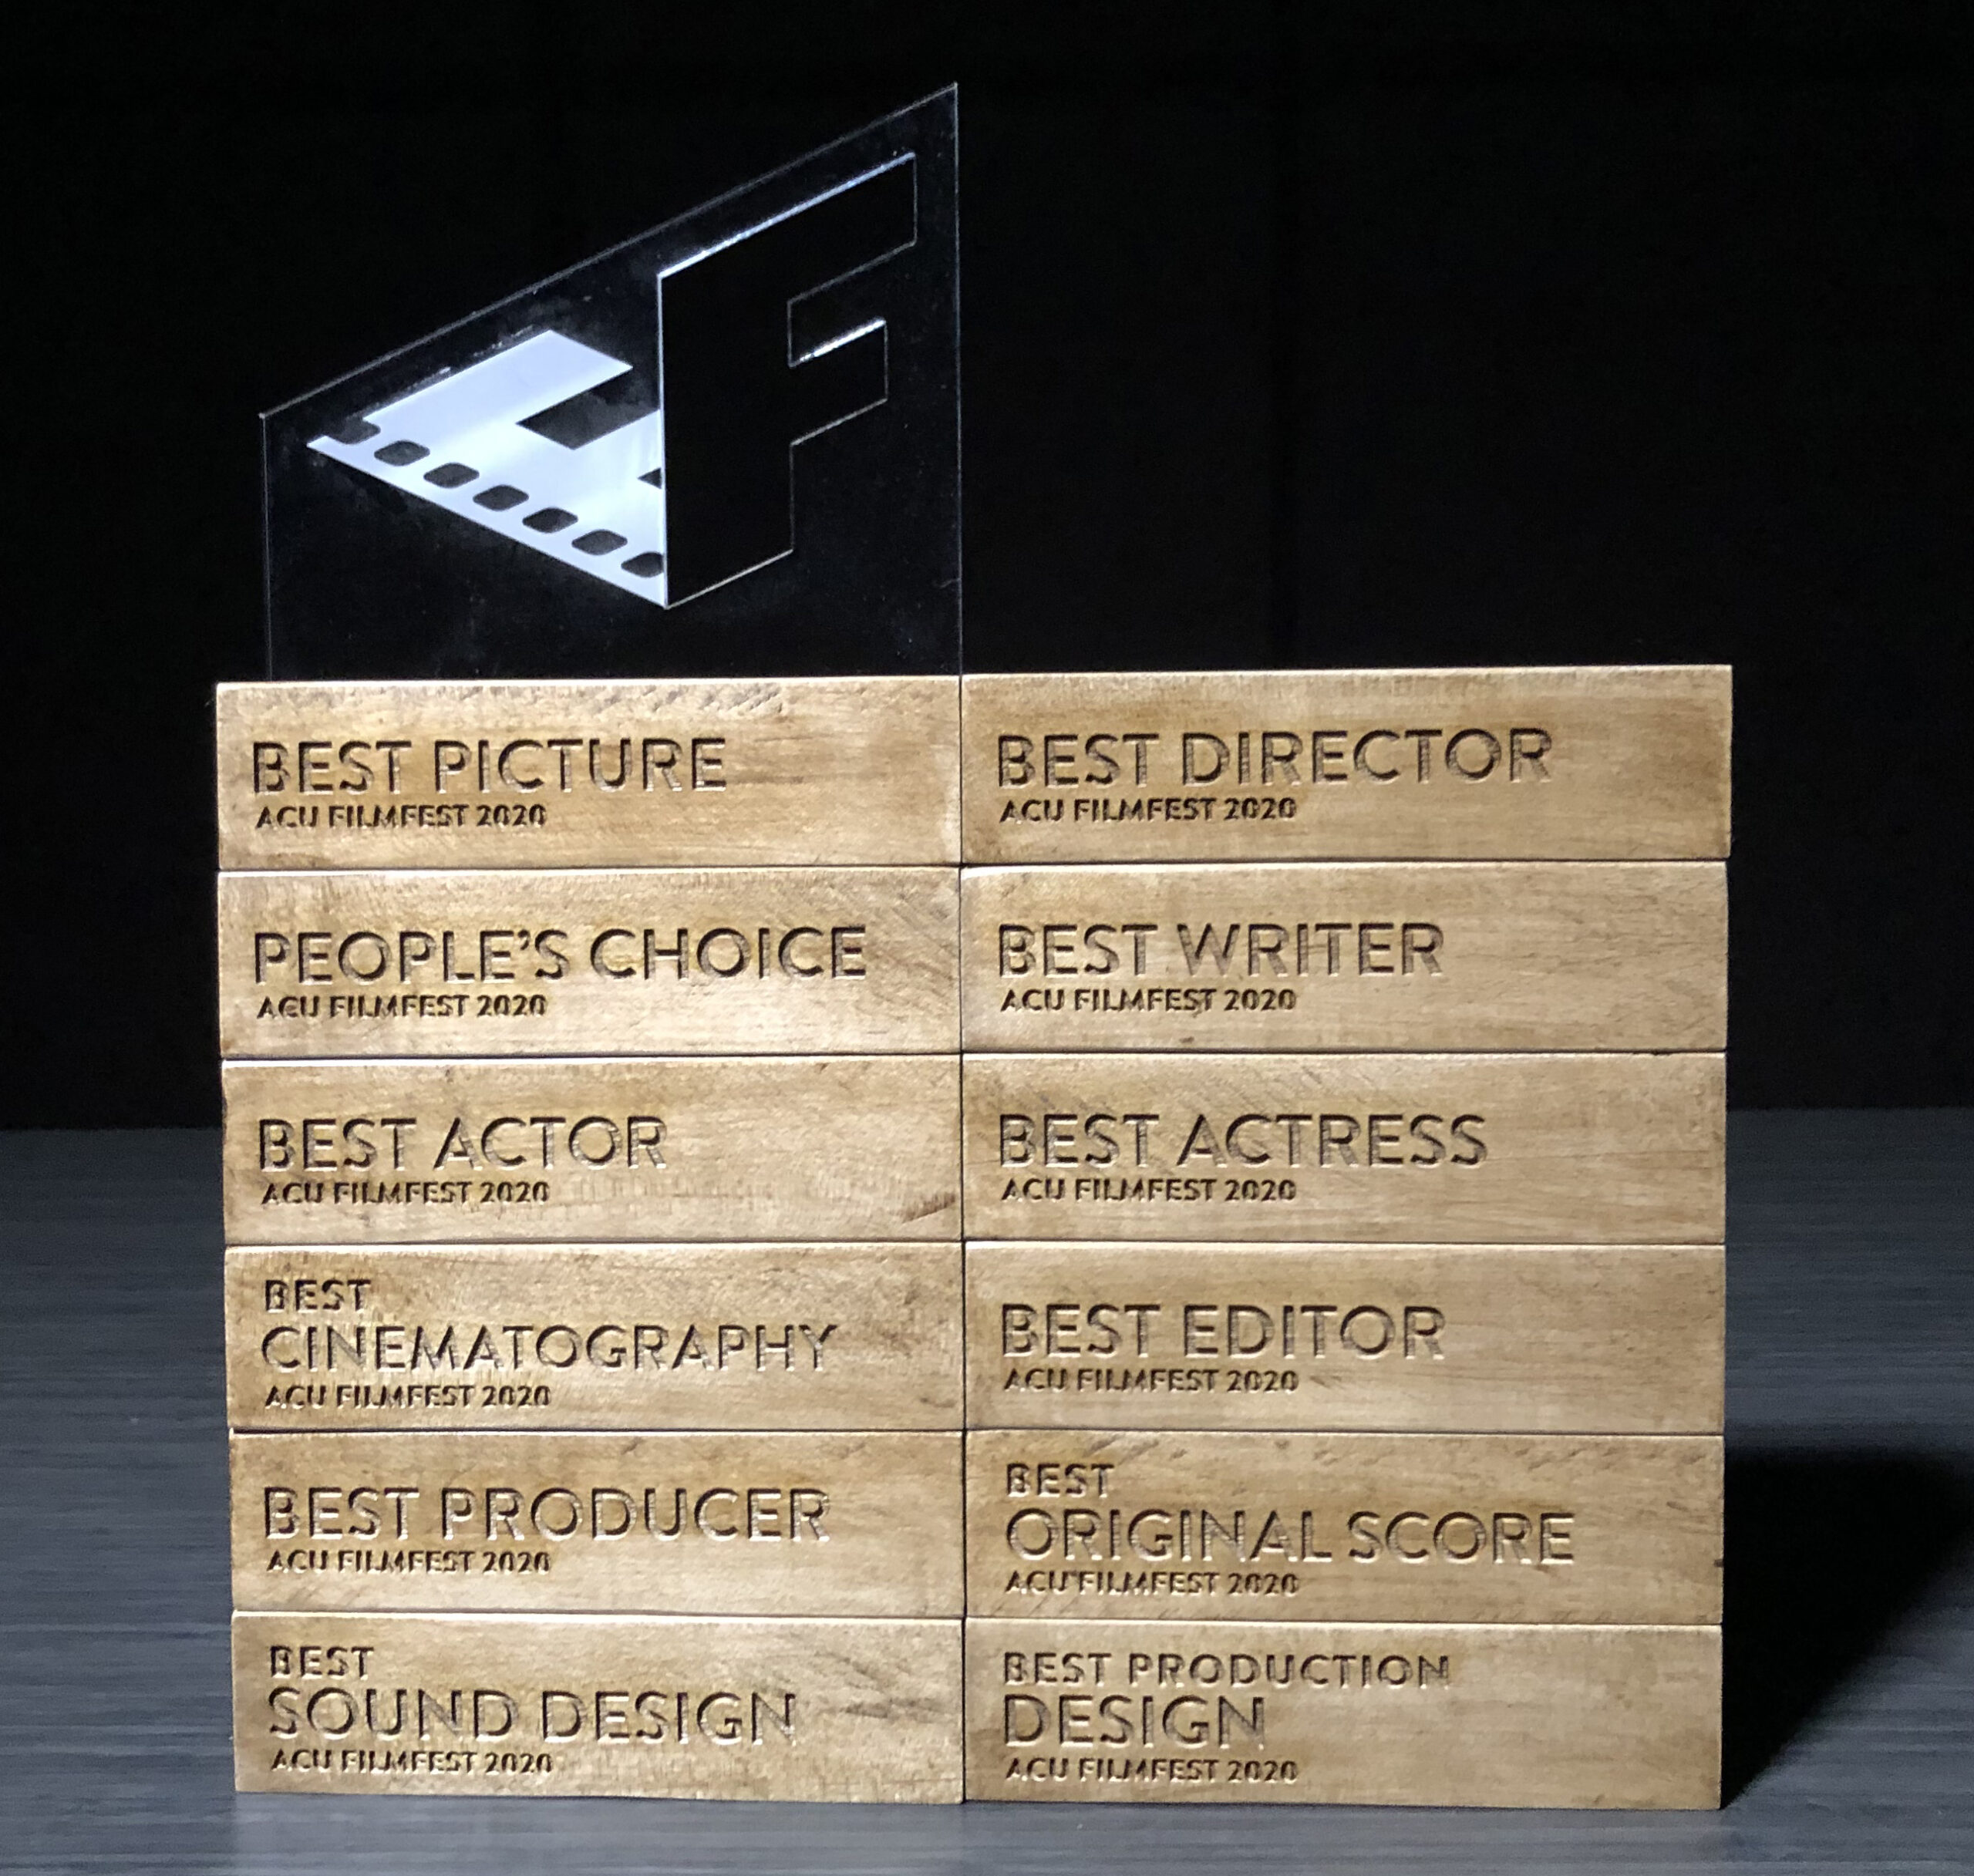 The awards given in acting, production, and technical categories during the gala were produced by Learning Studio and Maker Lab staff.